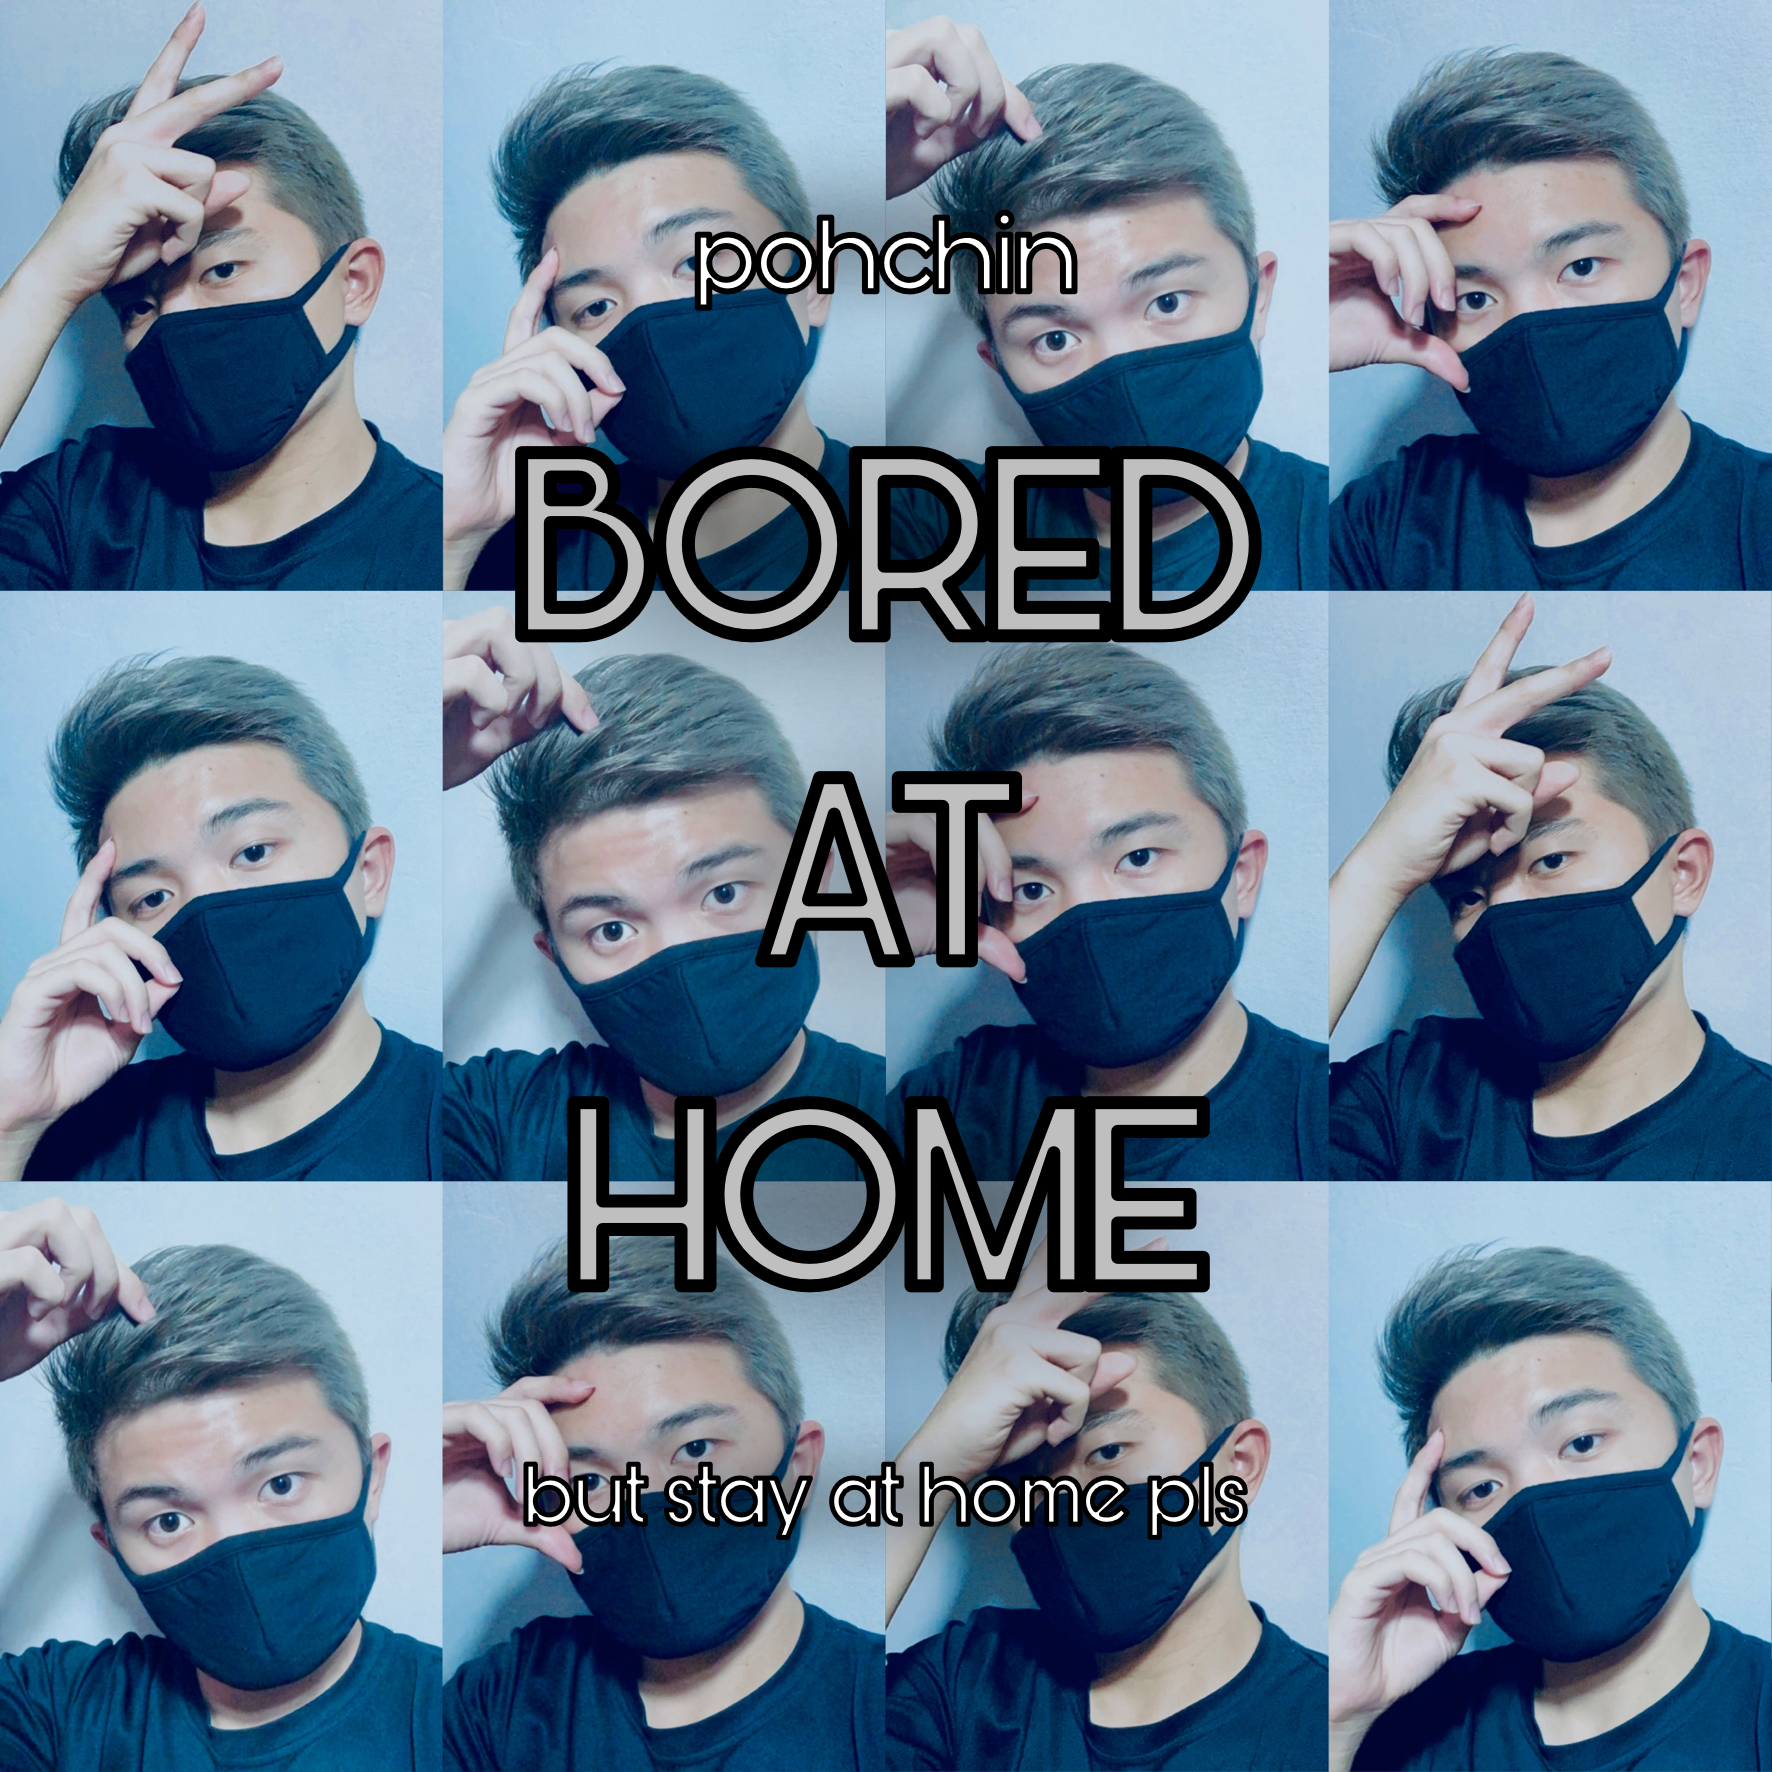 Bored at home cover